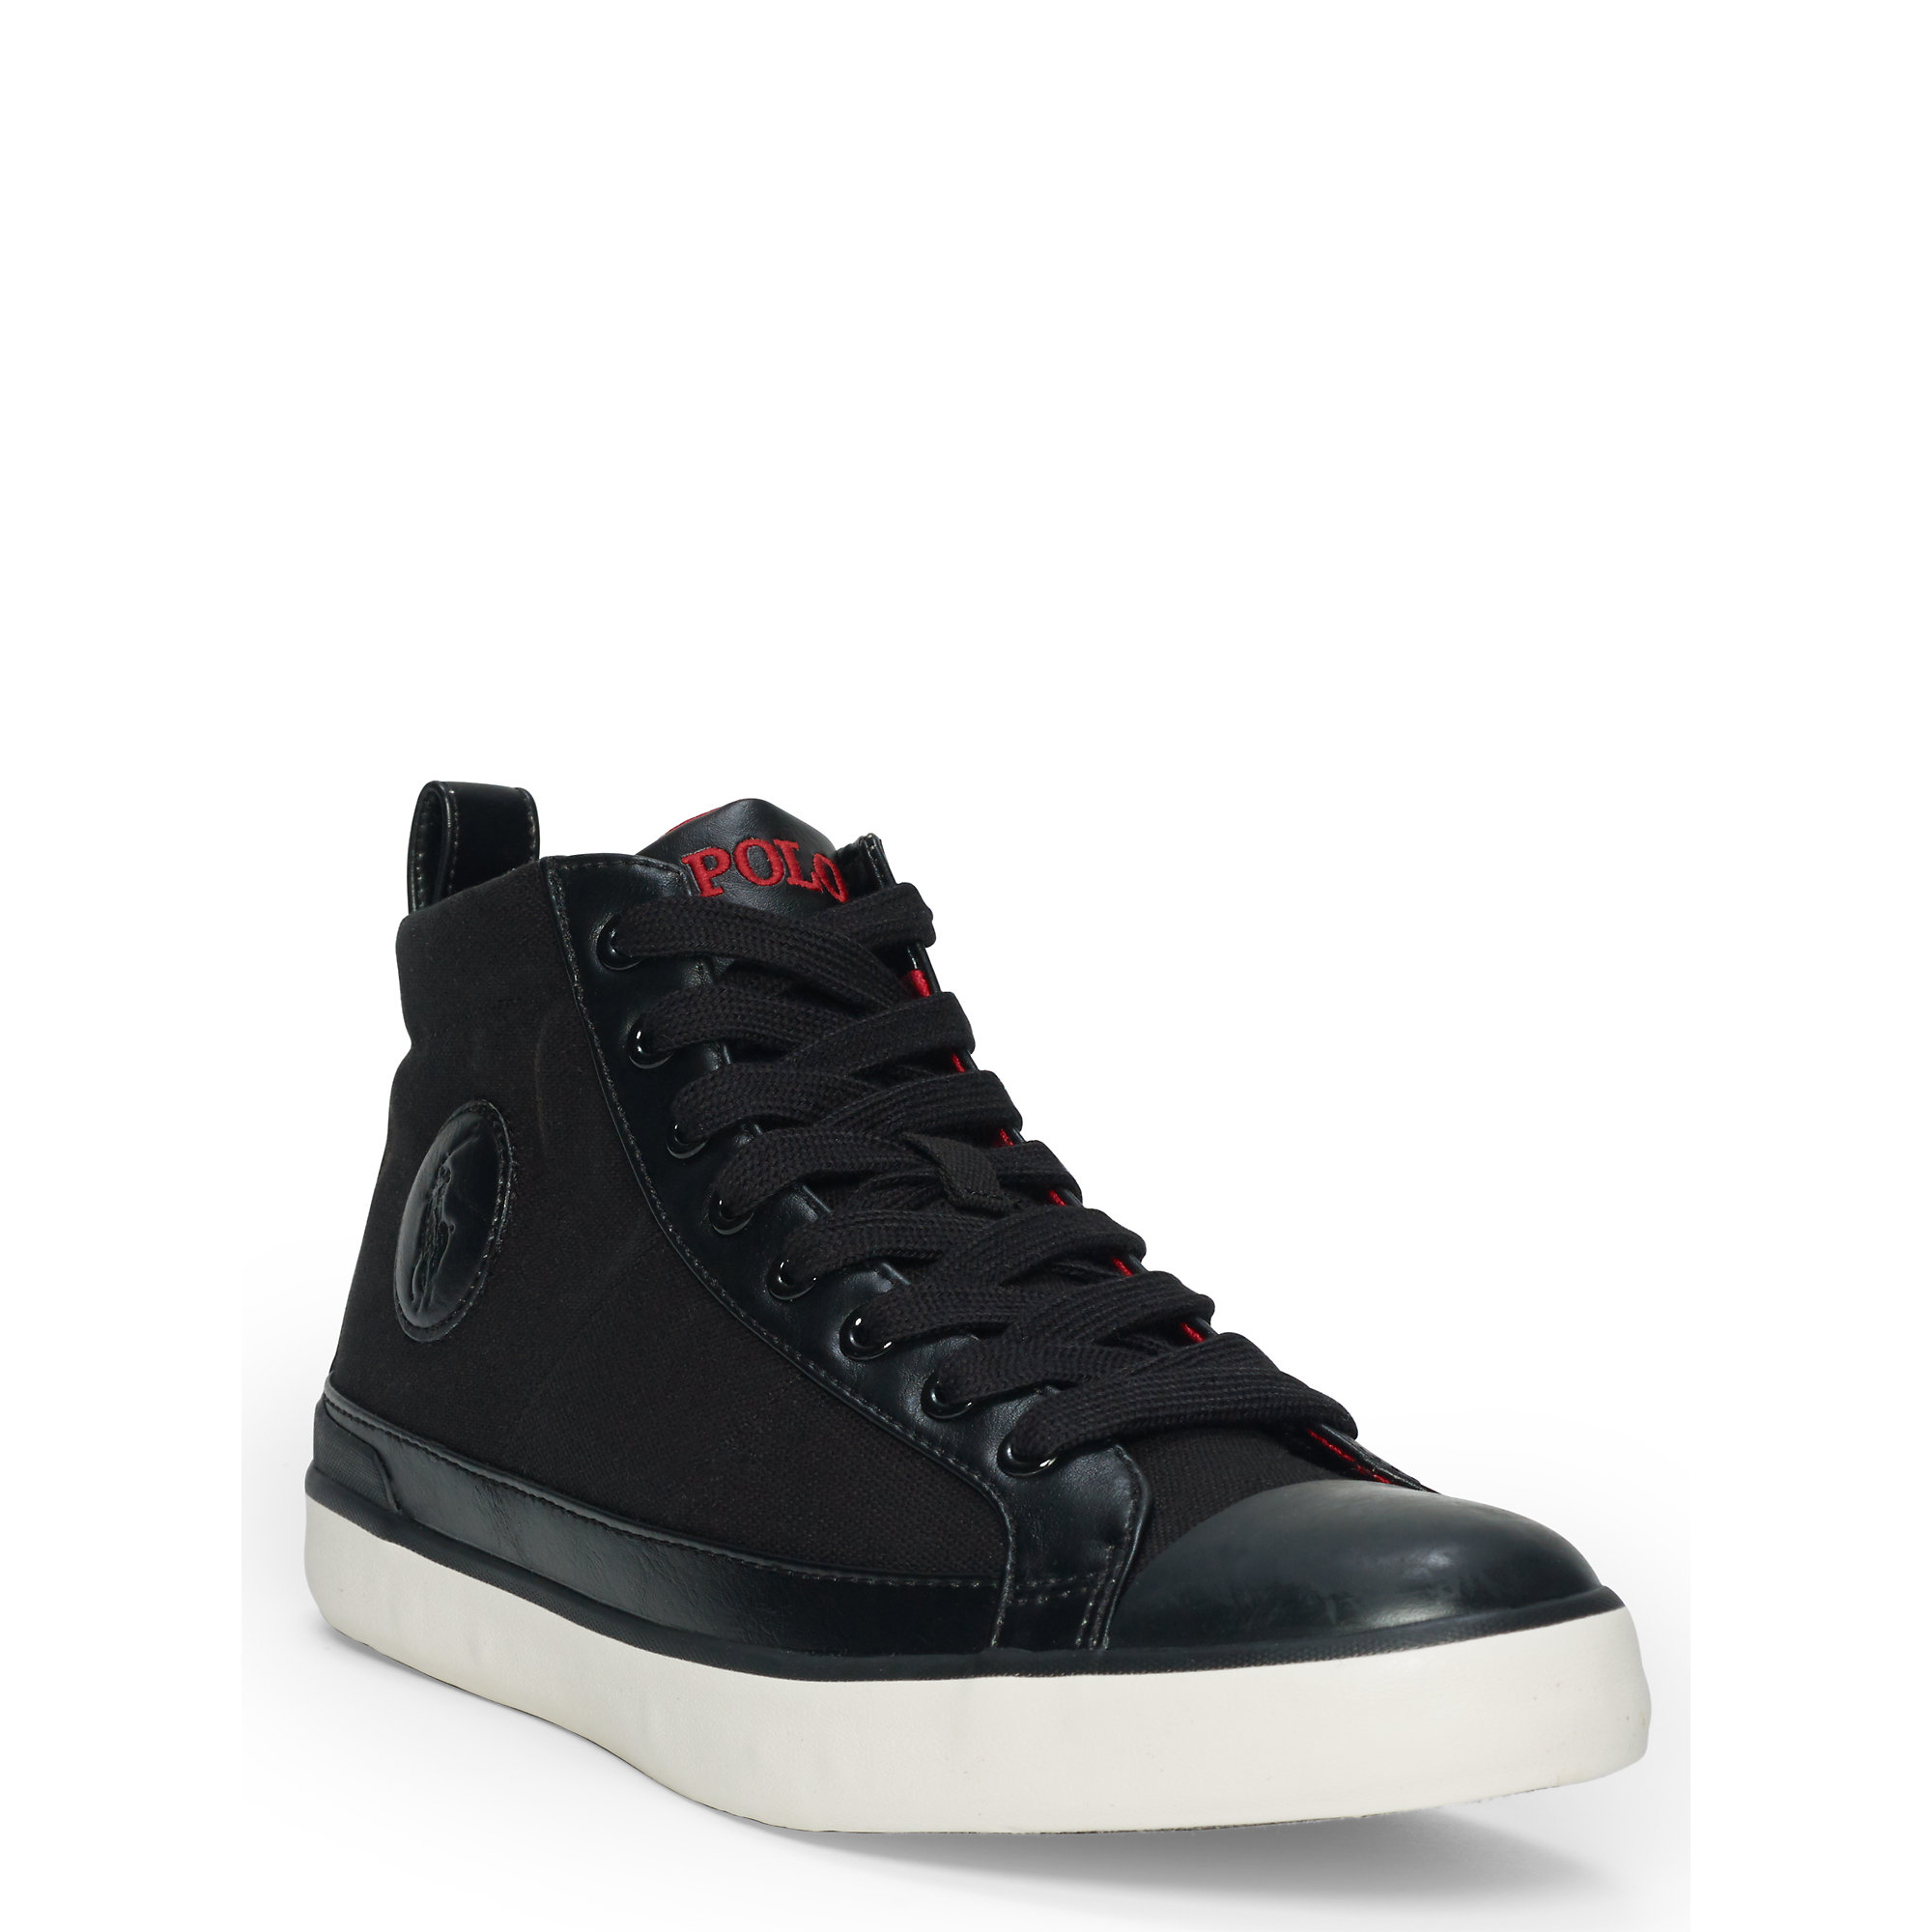 Polo Ralph Lauren Shoes Sale Canvas High Top Sneakers